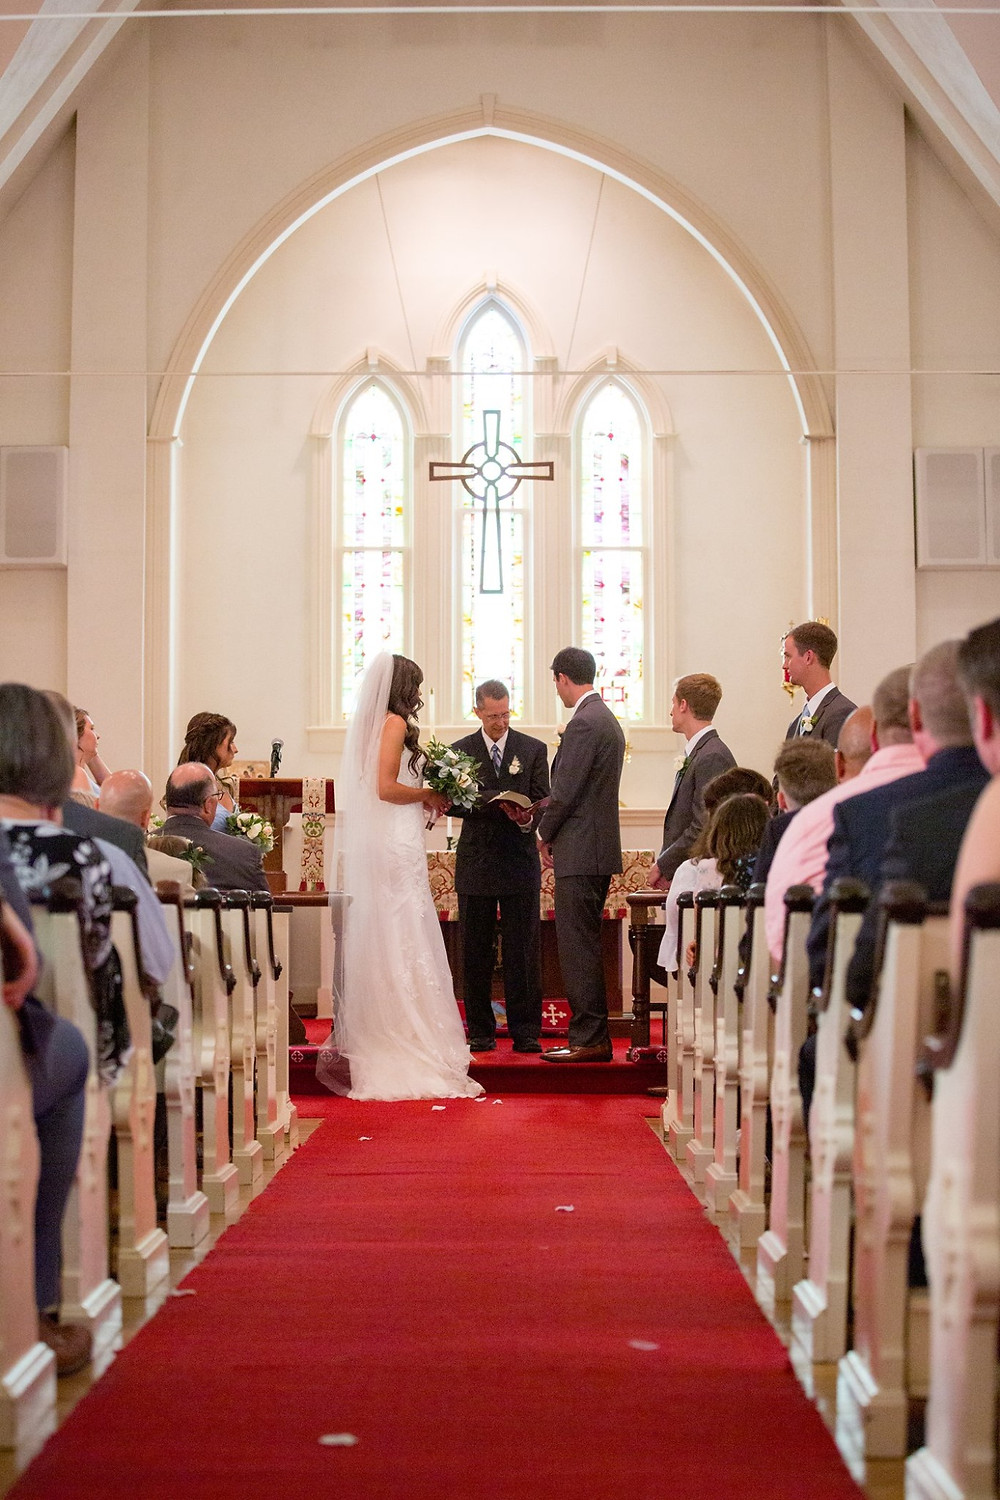 Ceremony at St Mark's Episcopal Church. Red isle runner and you can see some guests and the bride and groom as they stand at the front of the church